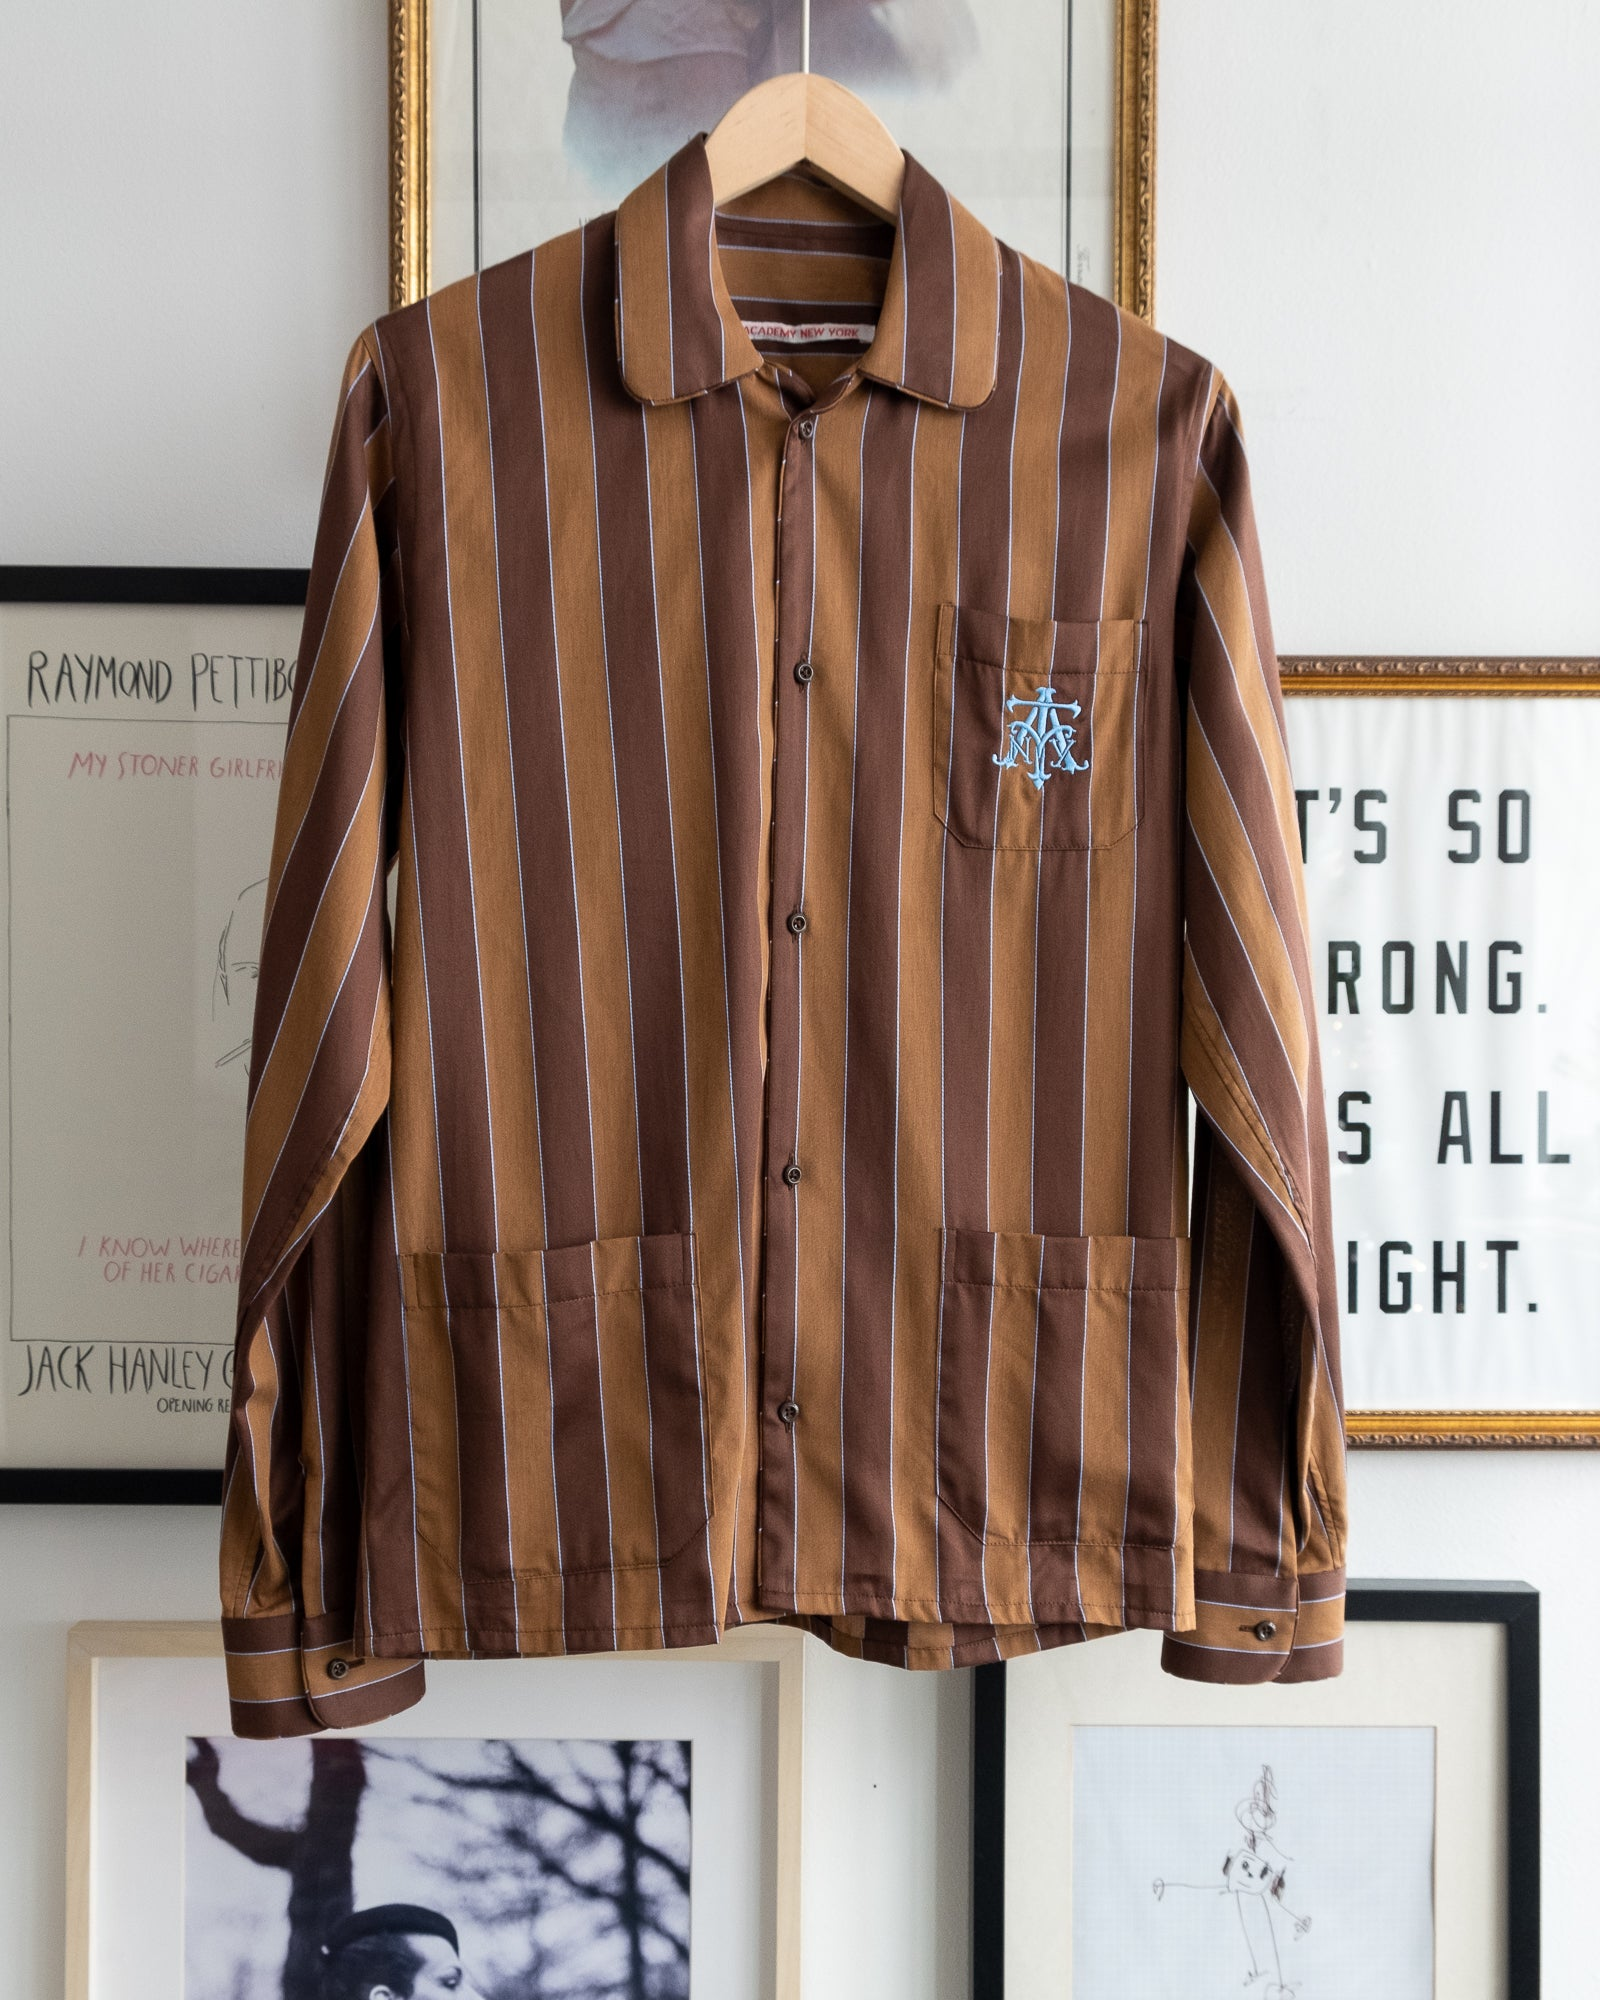 The Academy New York Crest PJ shirt in brown/blue with blue embroidery on breast pocket.